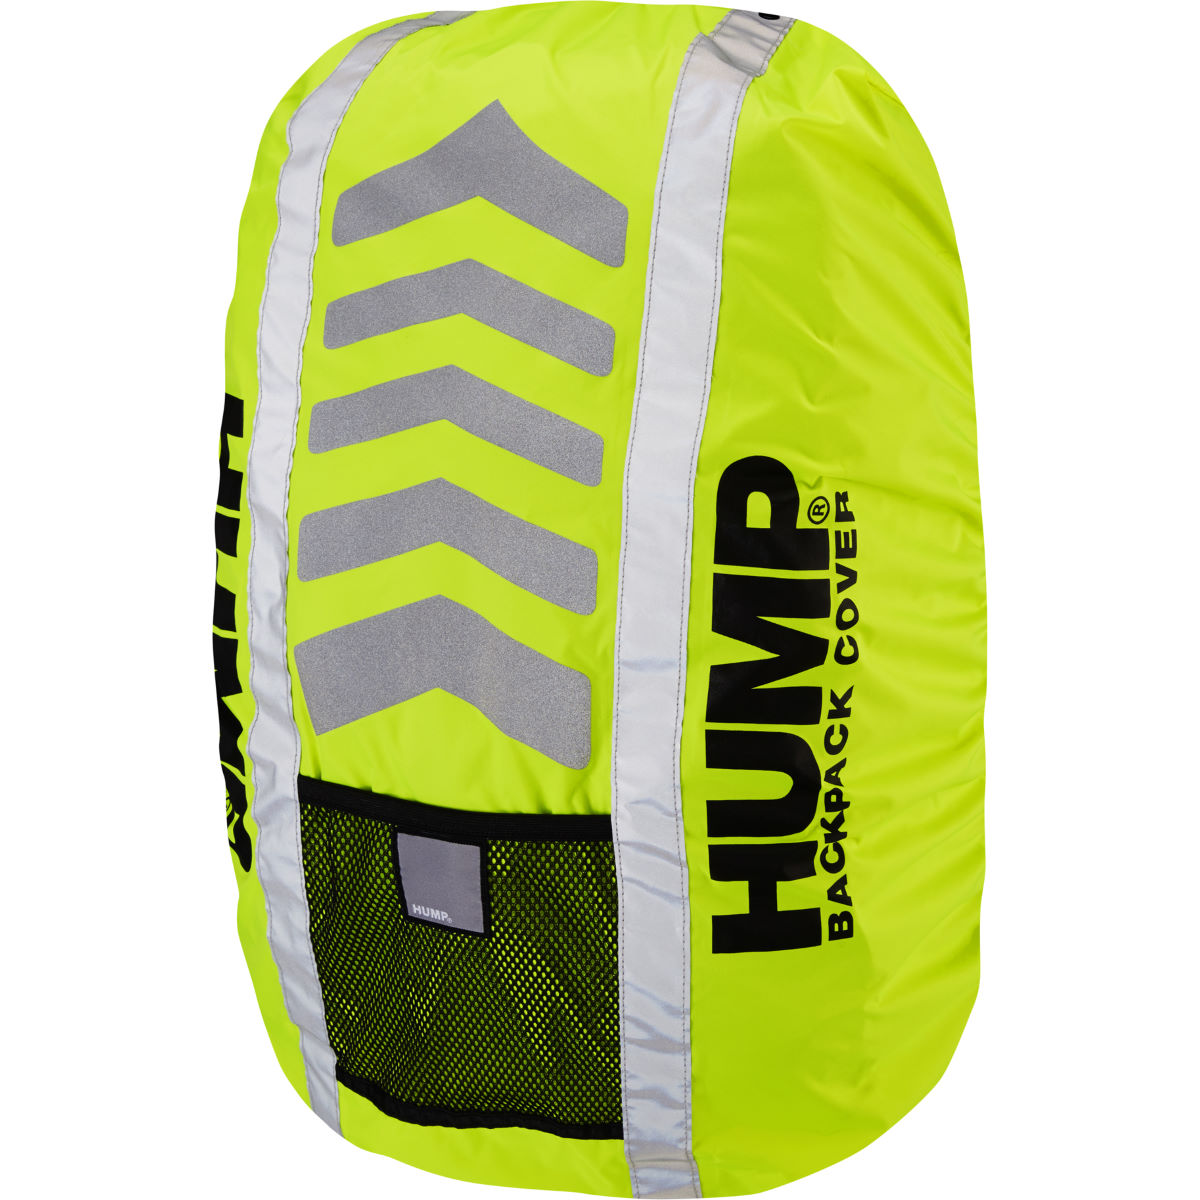 Housse de sac à dos HUMP Big Hump (50 litres) - One Size (50L) Safety Yellow Sacs à dos